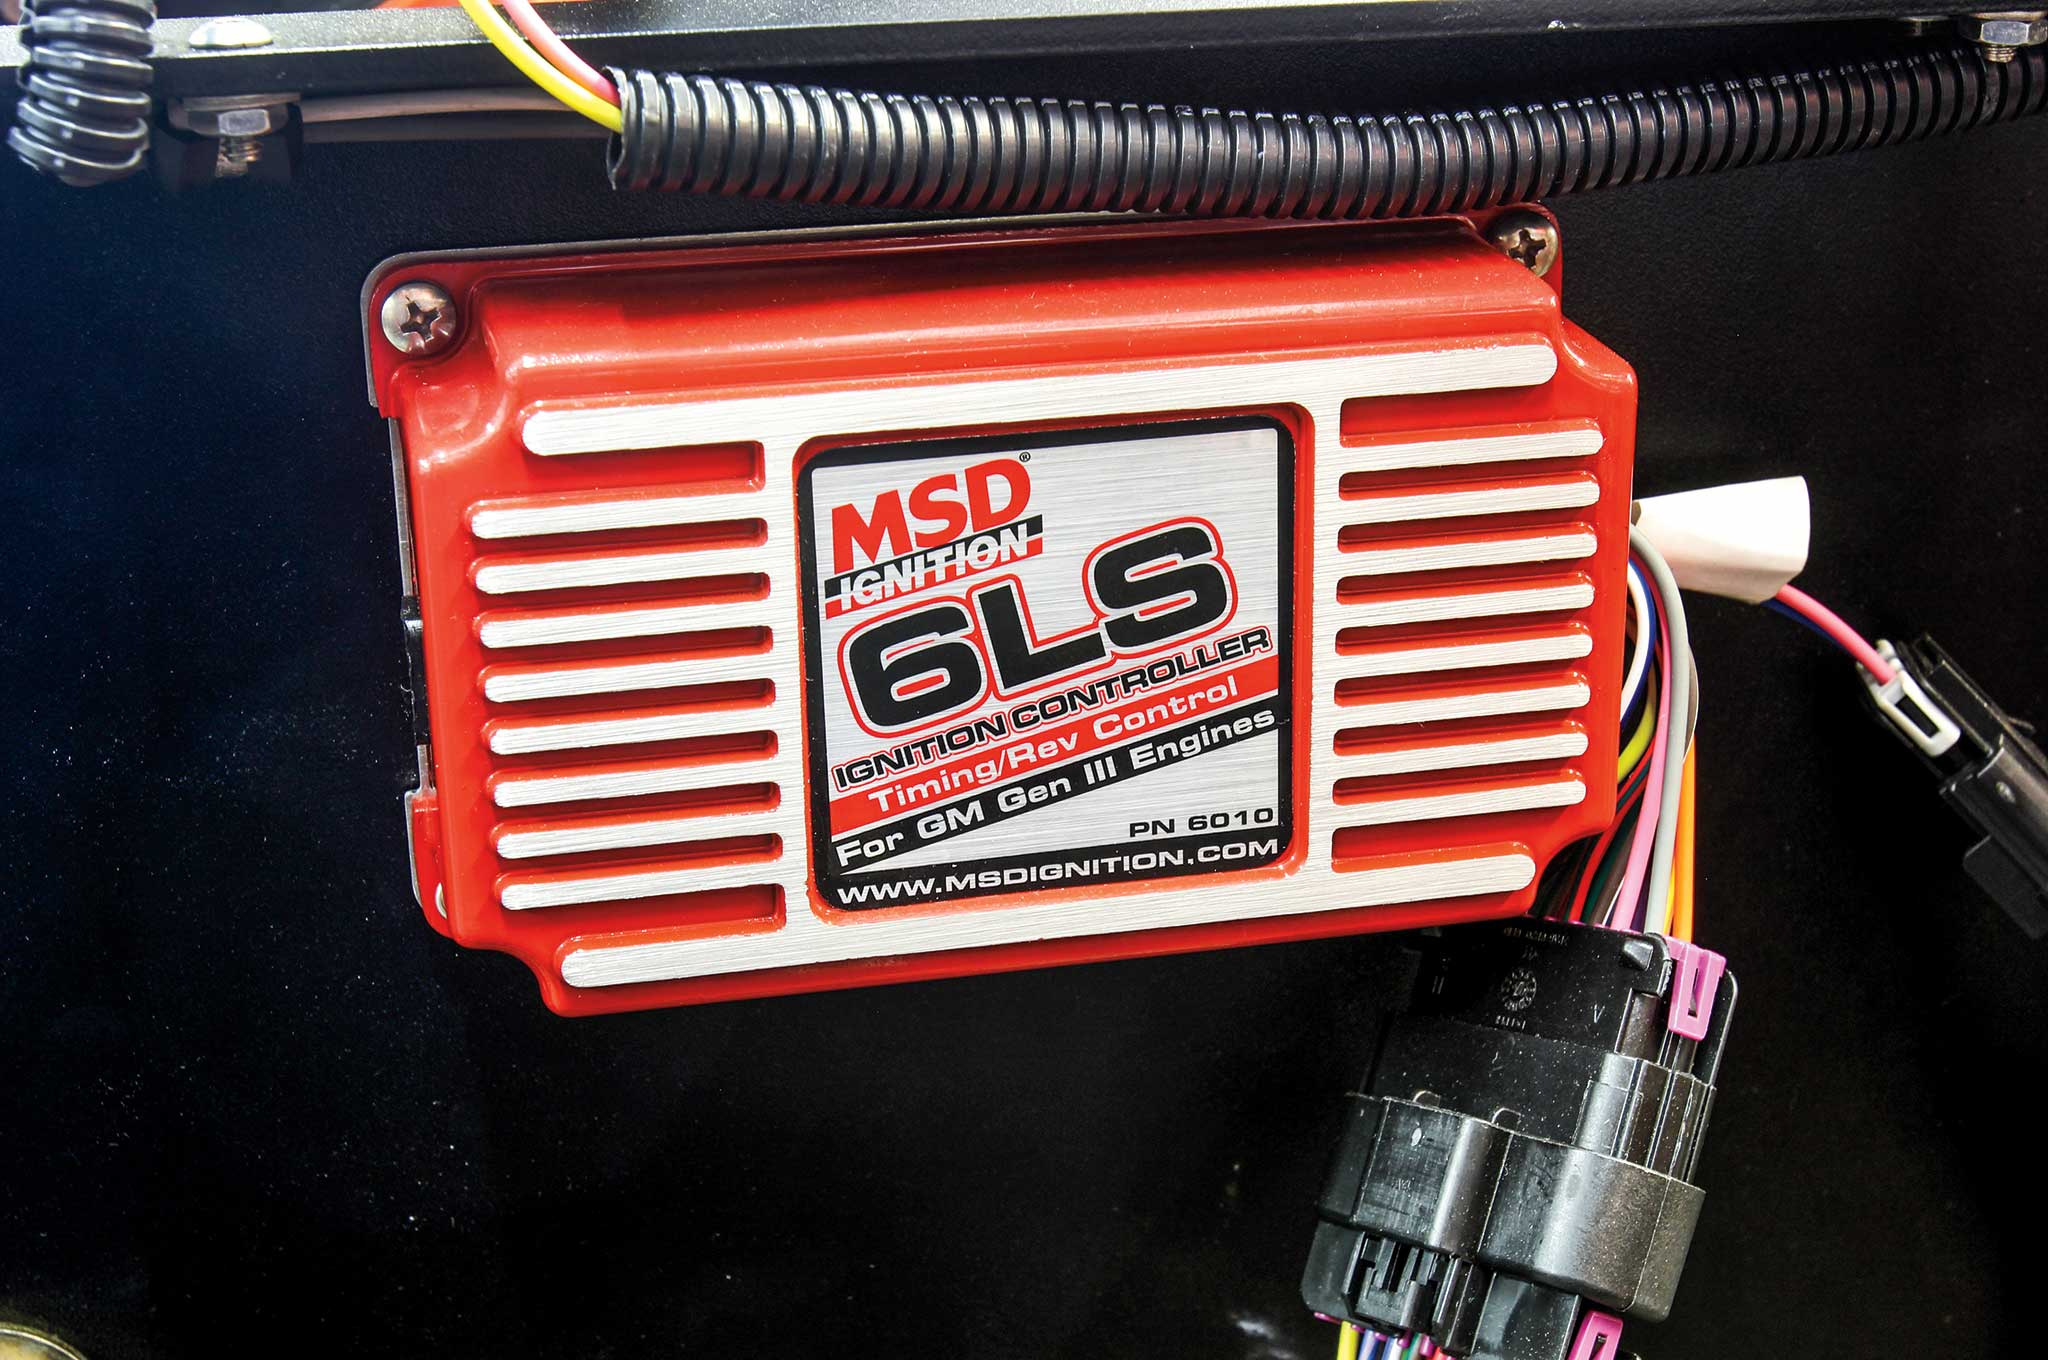 msd 6010 wiring harness 1999 ez go txt diagram details and tips to make your ls engine conversion easy